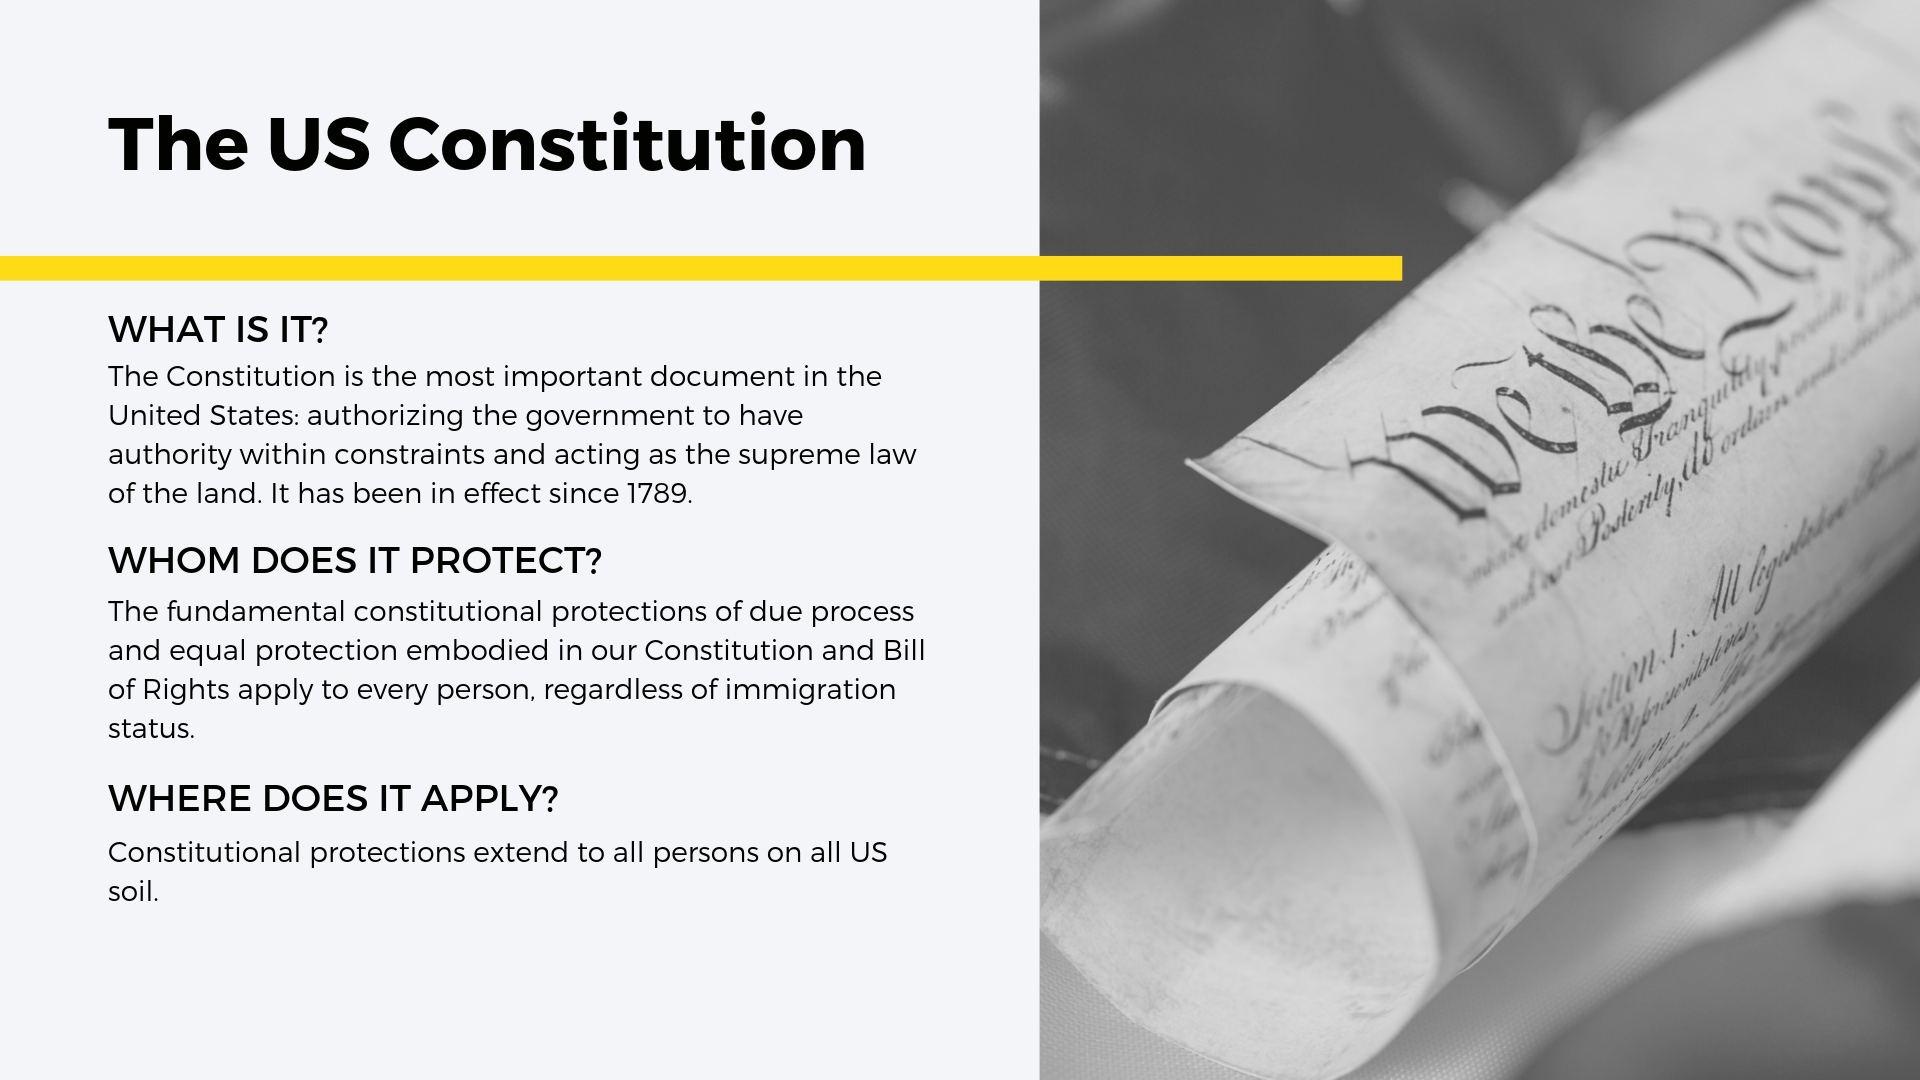 1. The United States Constitution - The United States Constitution is the most important document in the United States, authorizing the government to have authority within constraints and acting as the supreme law of the land. Enshrined within this document are the rights that we all enjoy, and it is the document that acts as the ultimate authority within all US jurisdictions upon all people within those jurisdictions—immigrant, refugee, asylum seeker, citizen, or even people without formal documentation.